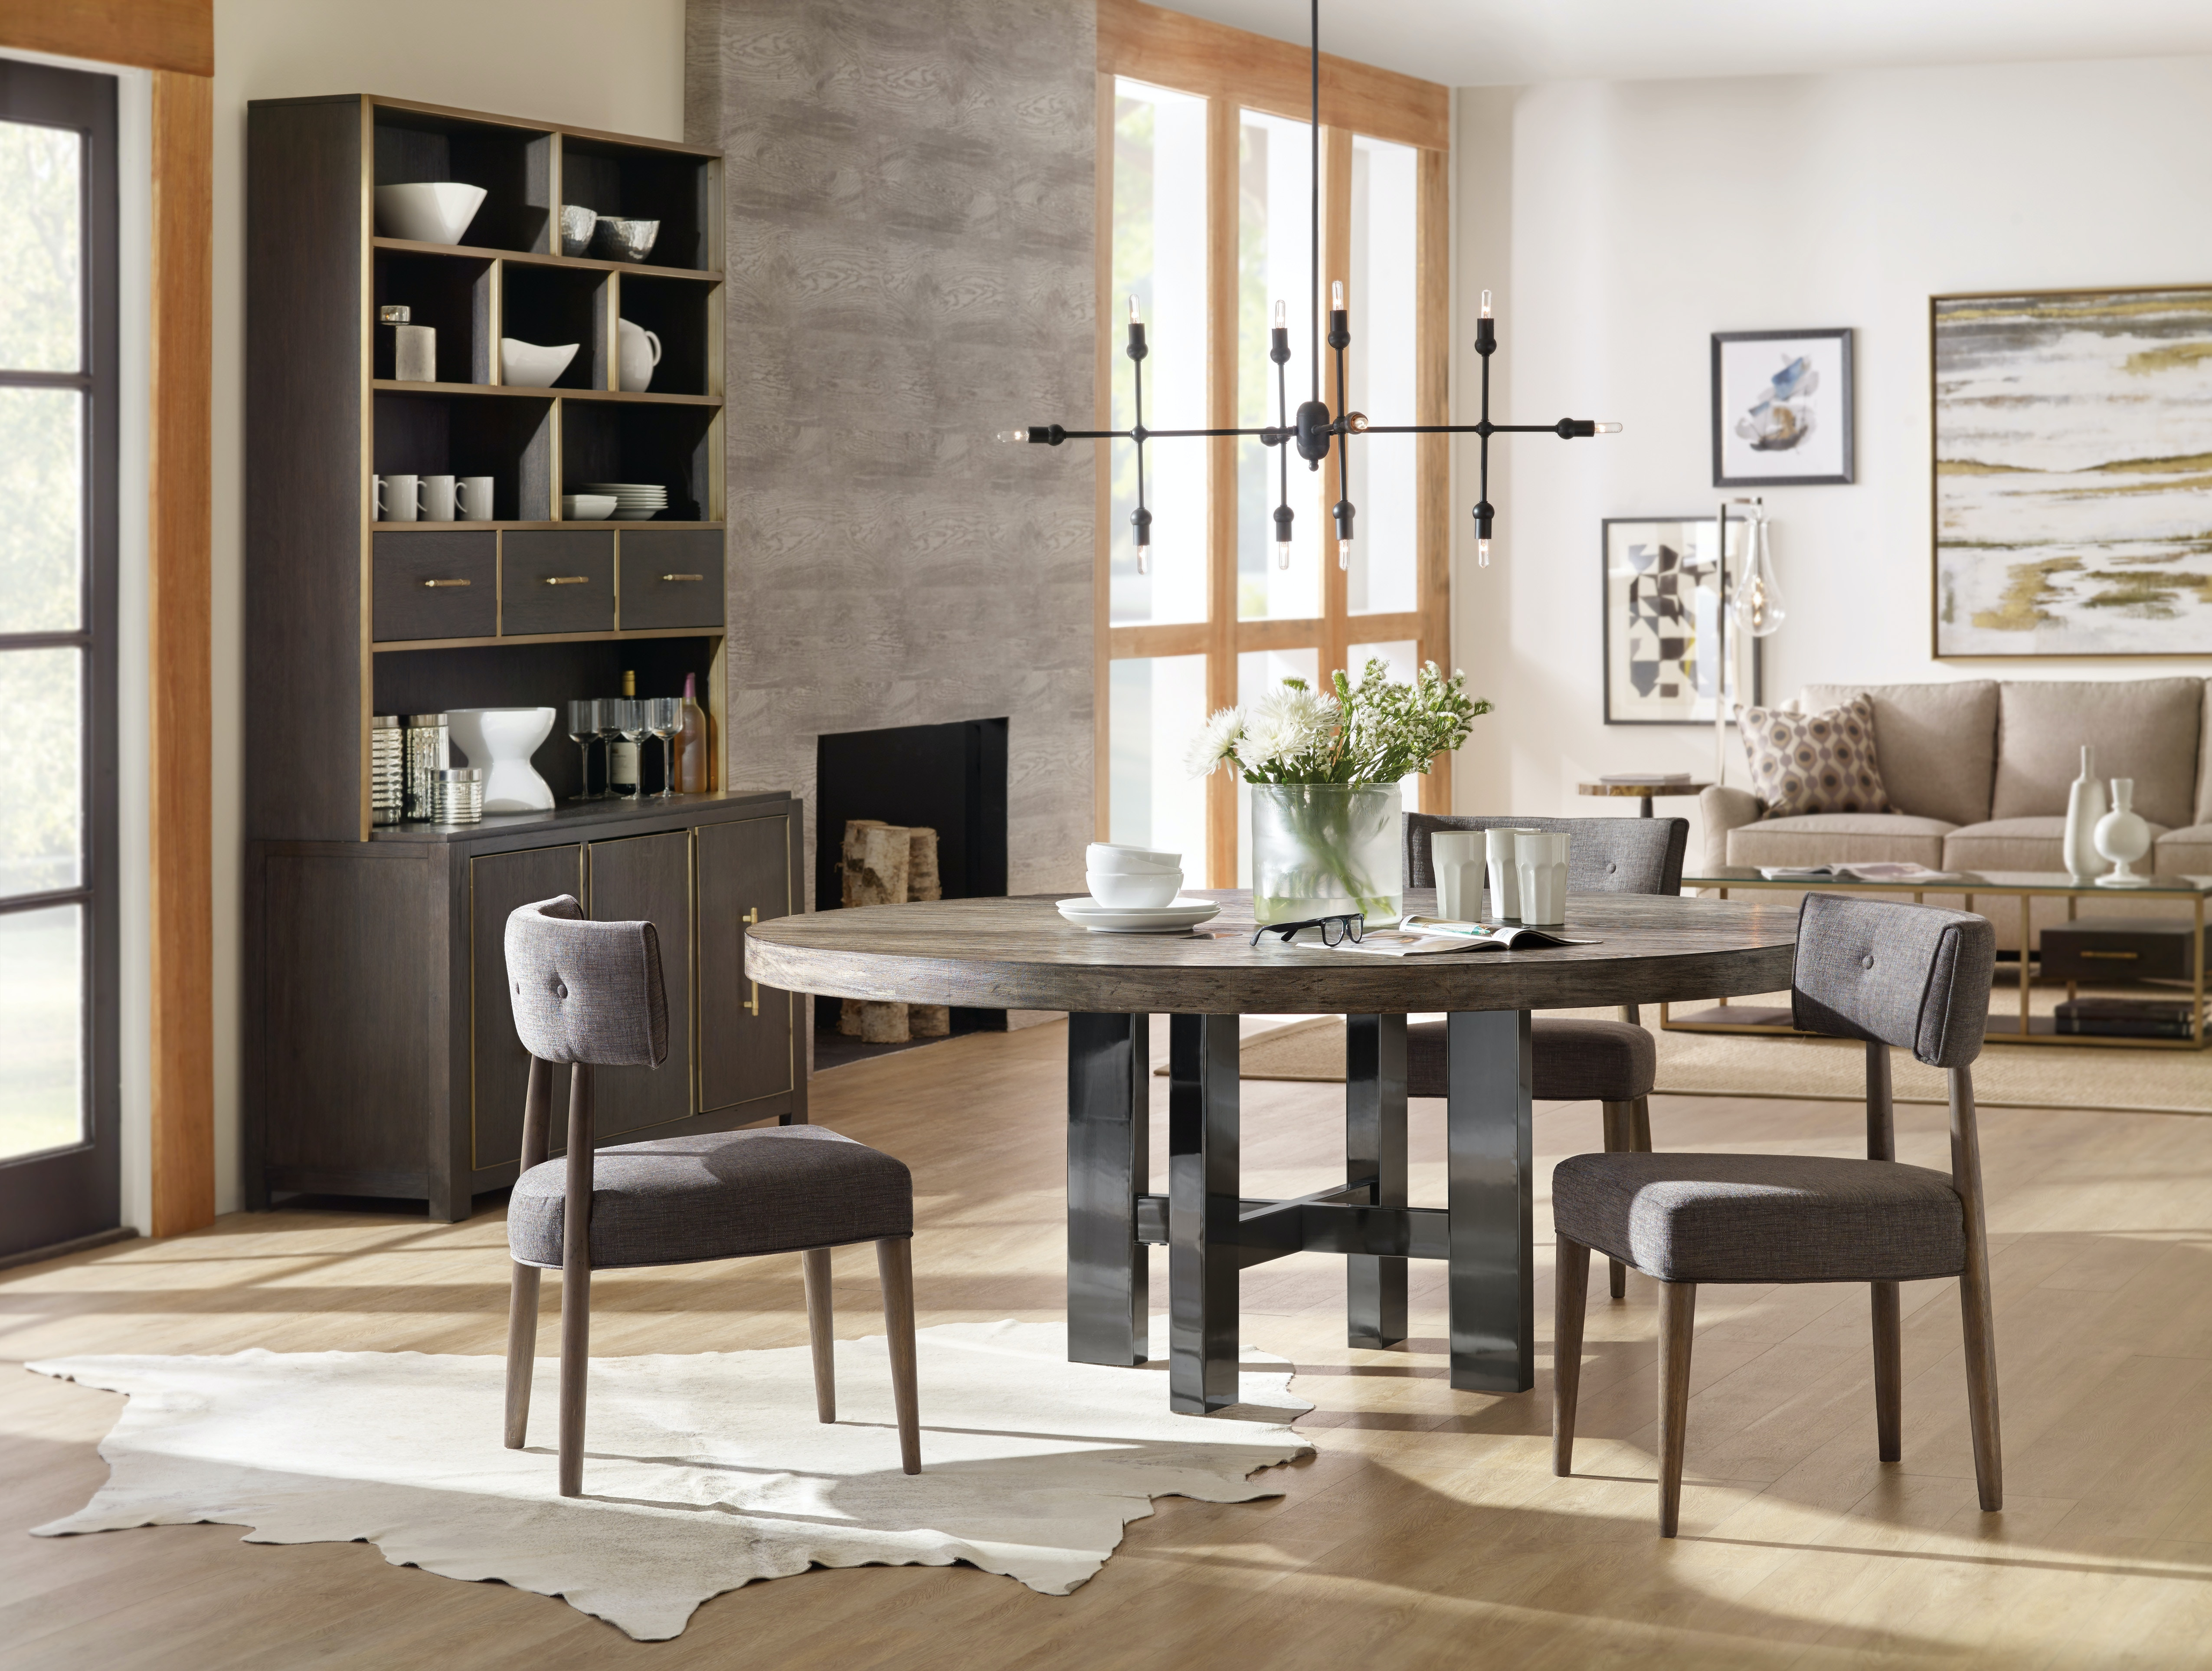 Hooker Furniture Dining Room Curata Upholstered Chair 1600 MWD